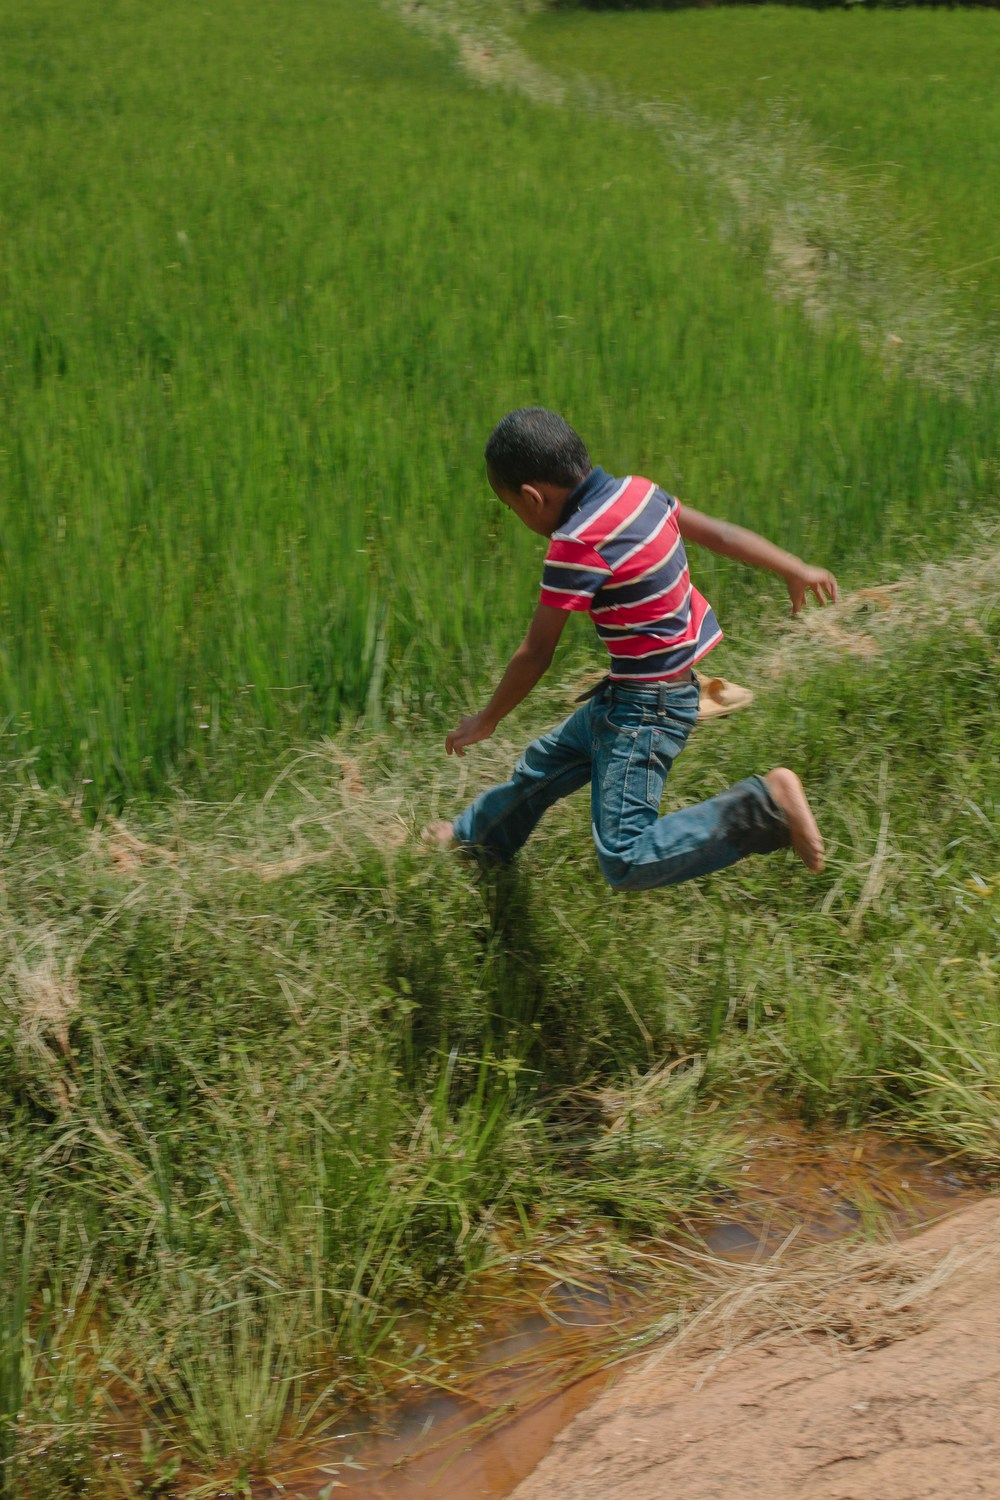 Mihary jumping across the fields.